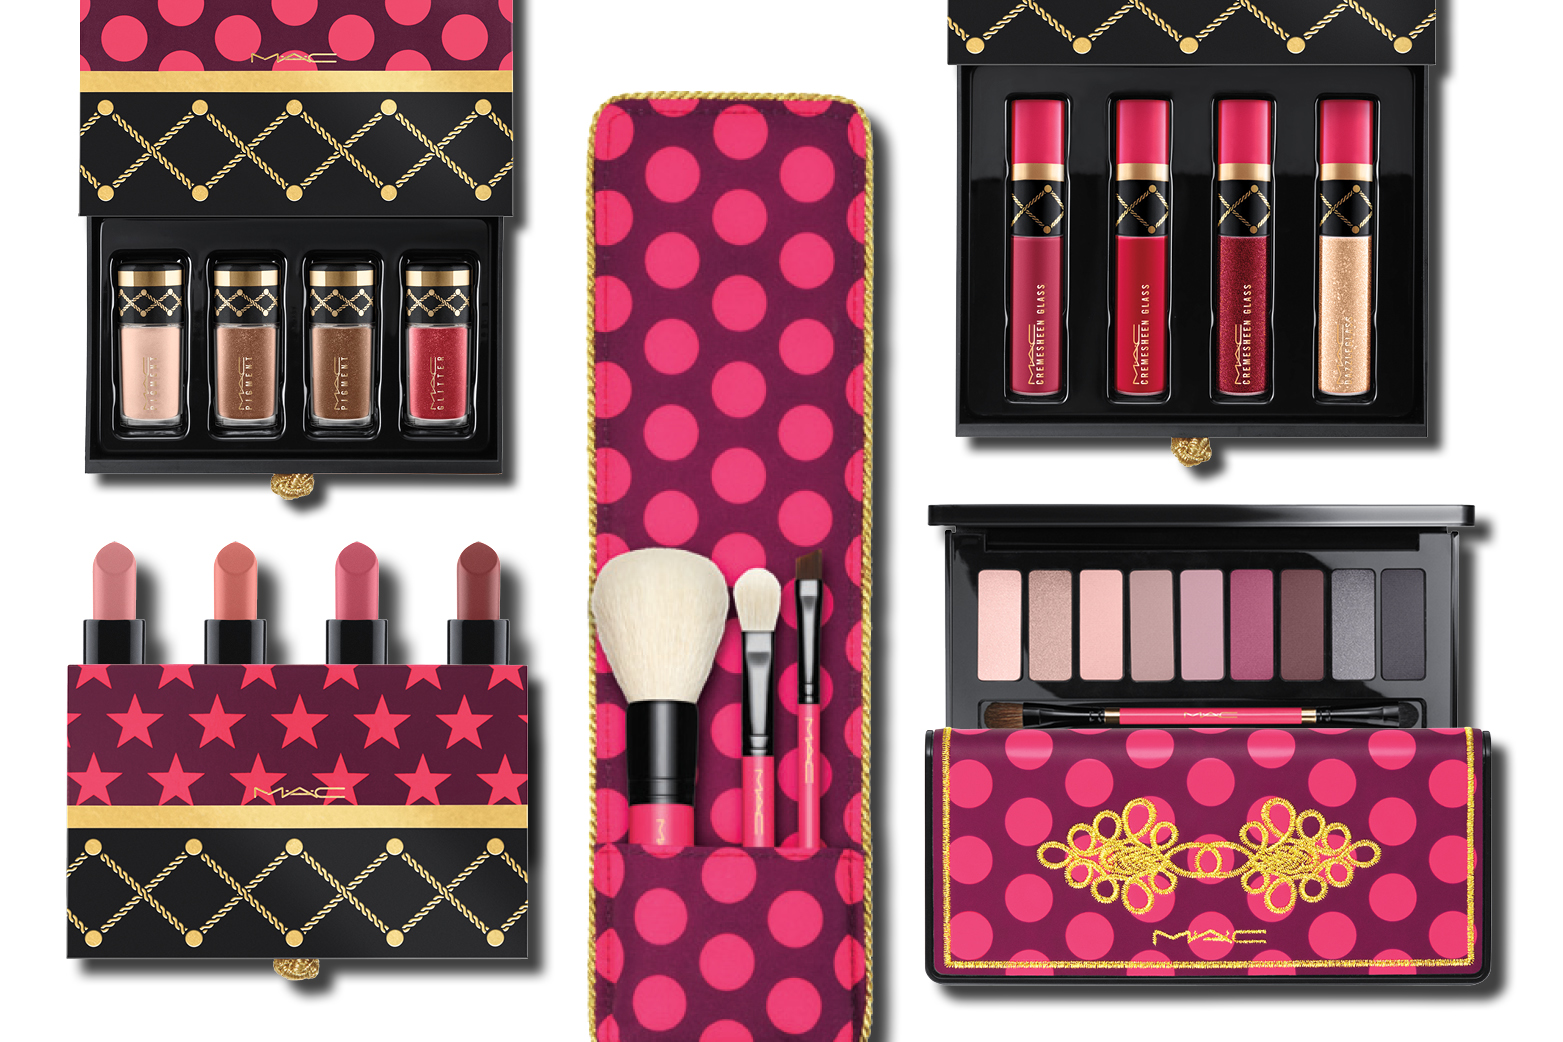 A taste of the MAC Nutcracker Sweet collection